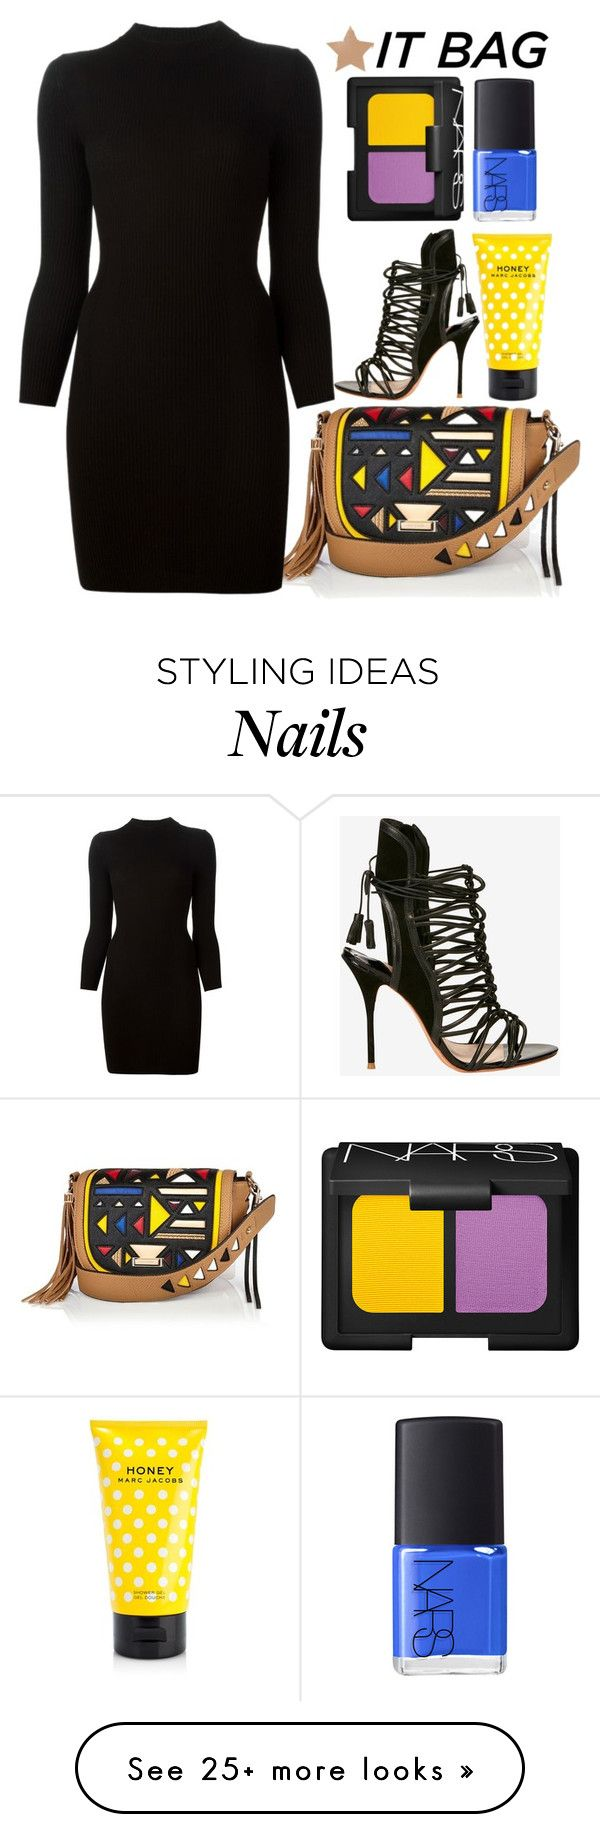 """RIver island Bag"" by bohedgian on Polyvore featuring River Island, Maison Margiela, Sophia Webster, NARS Cosmetics, Marc Jacobs, itbag, polyvoreeditorai and riiverisland"